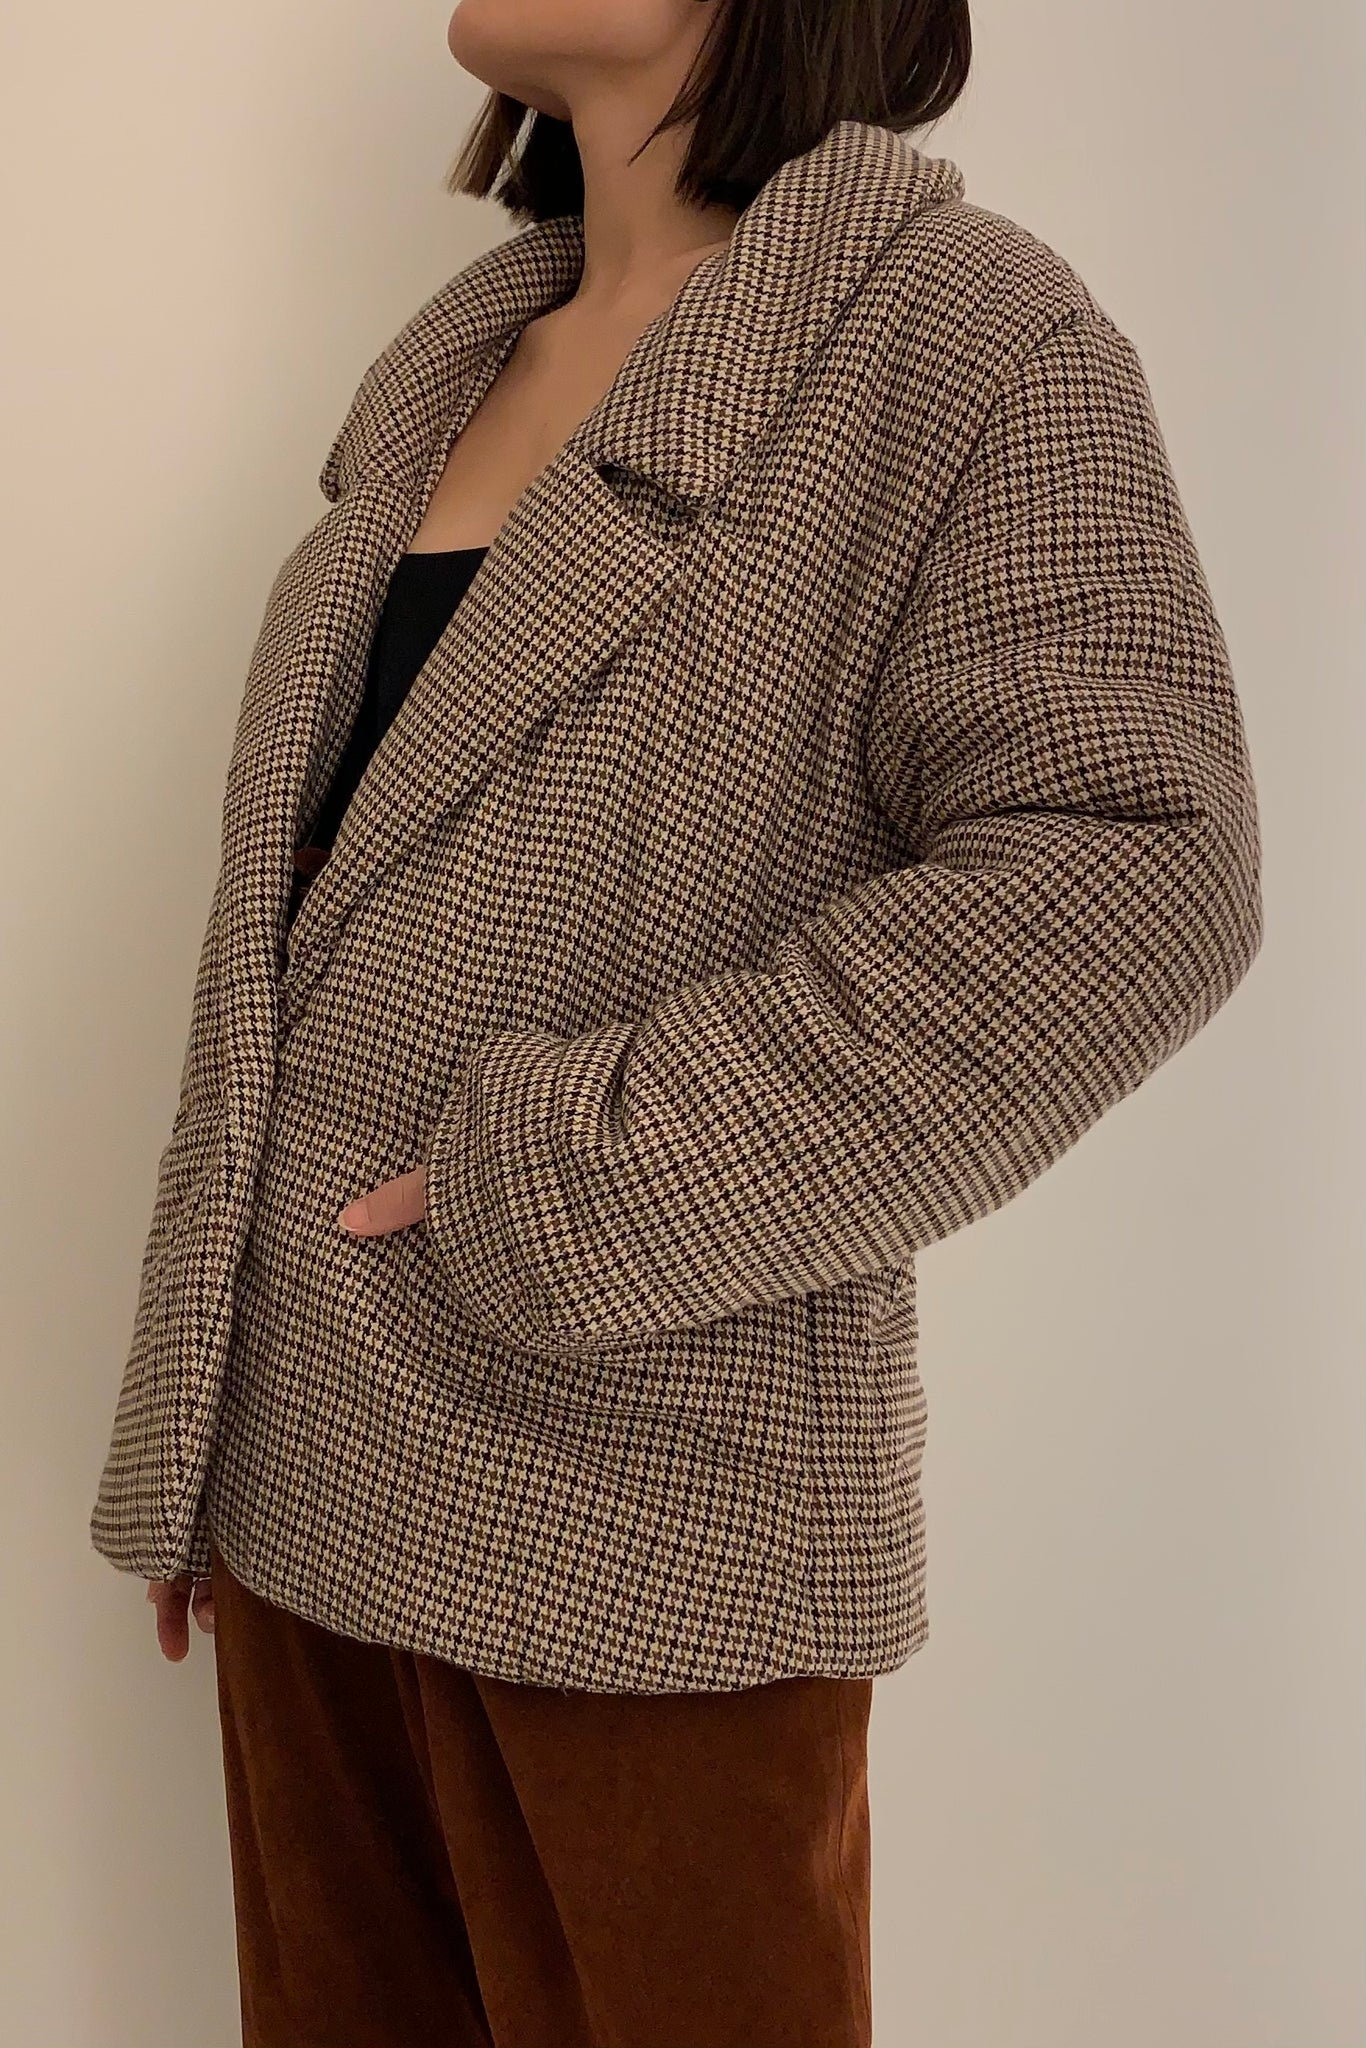 Free People Houndstooth Blazer Jacket